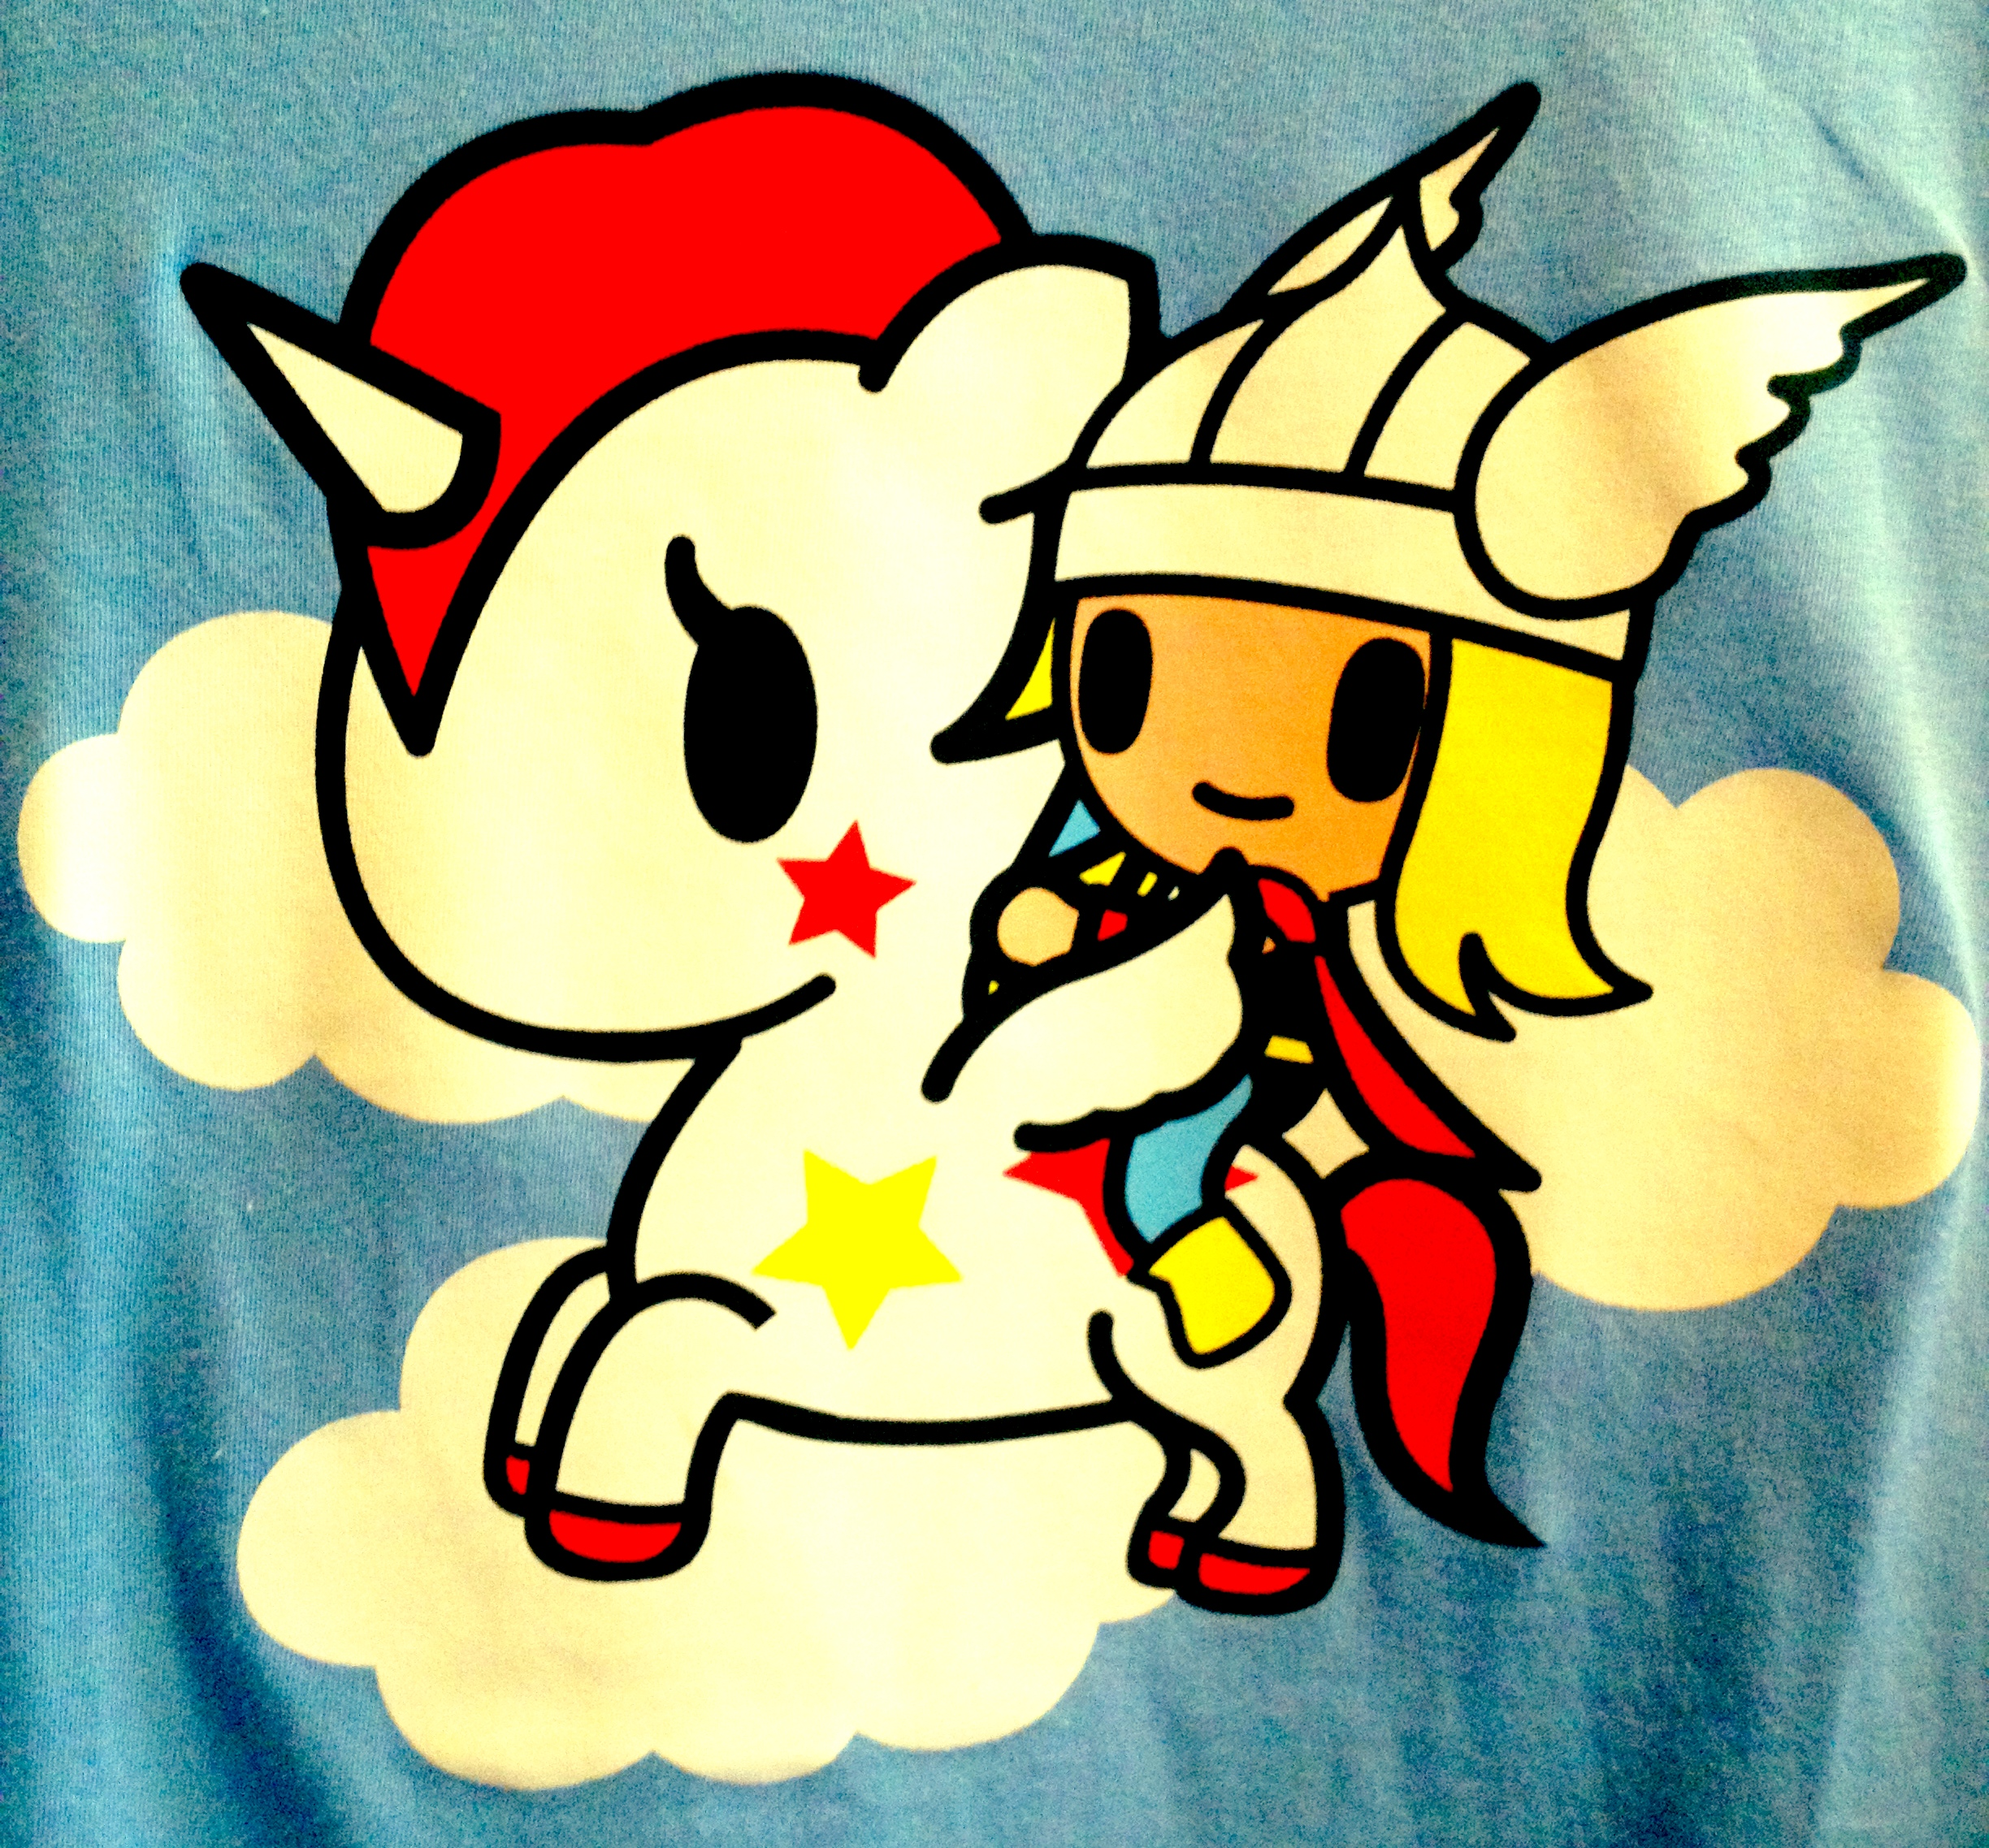 image courtesy tokidoki, you can by thor riding a unicorn on a teeshirt